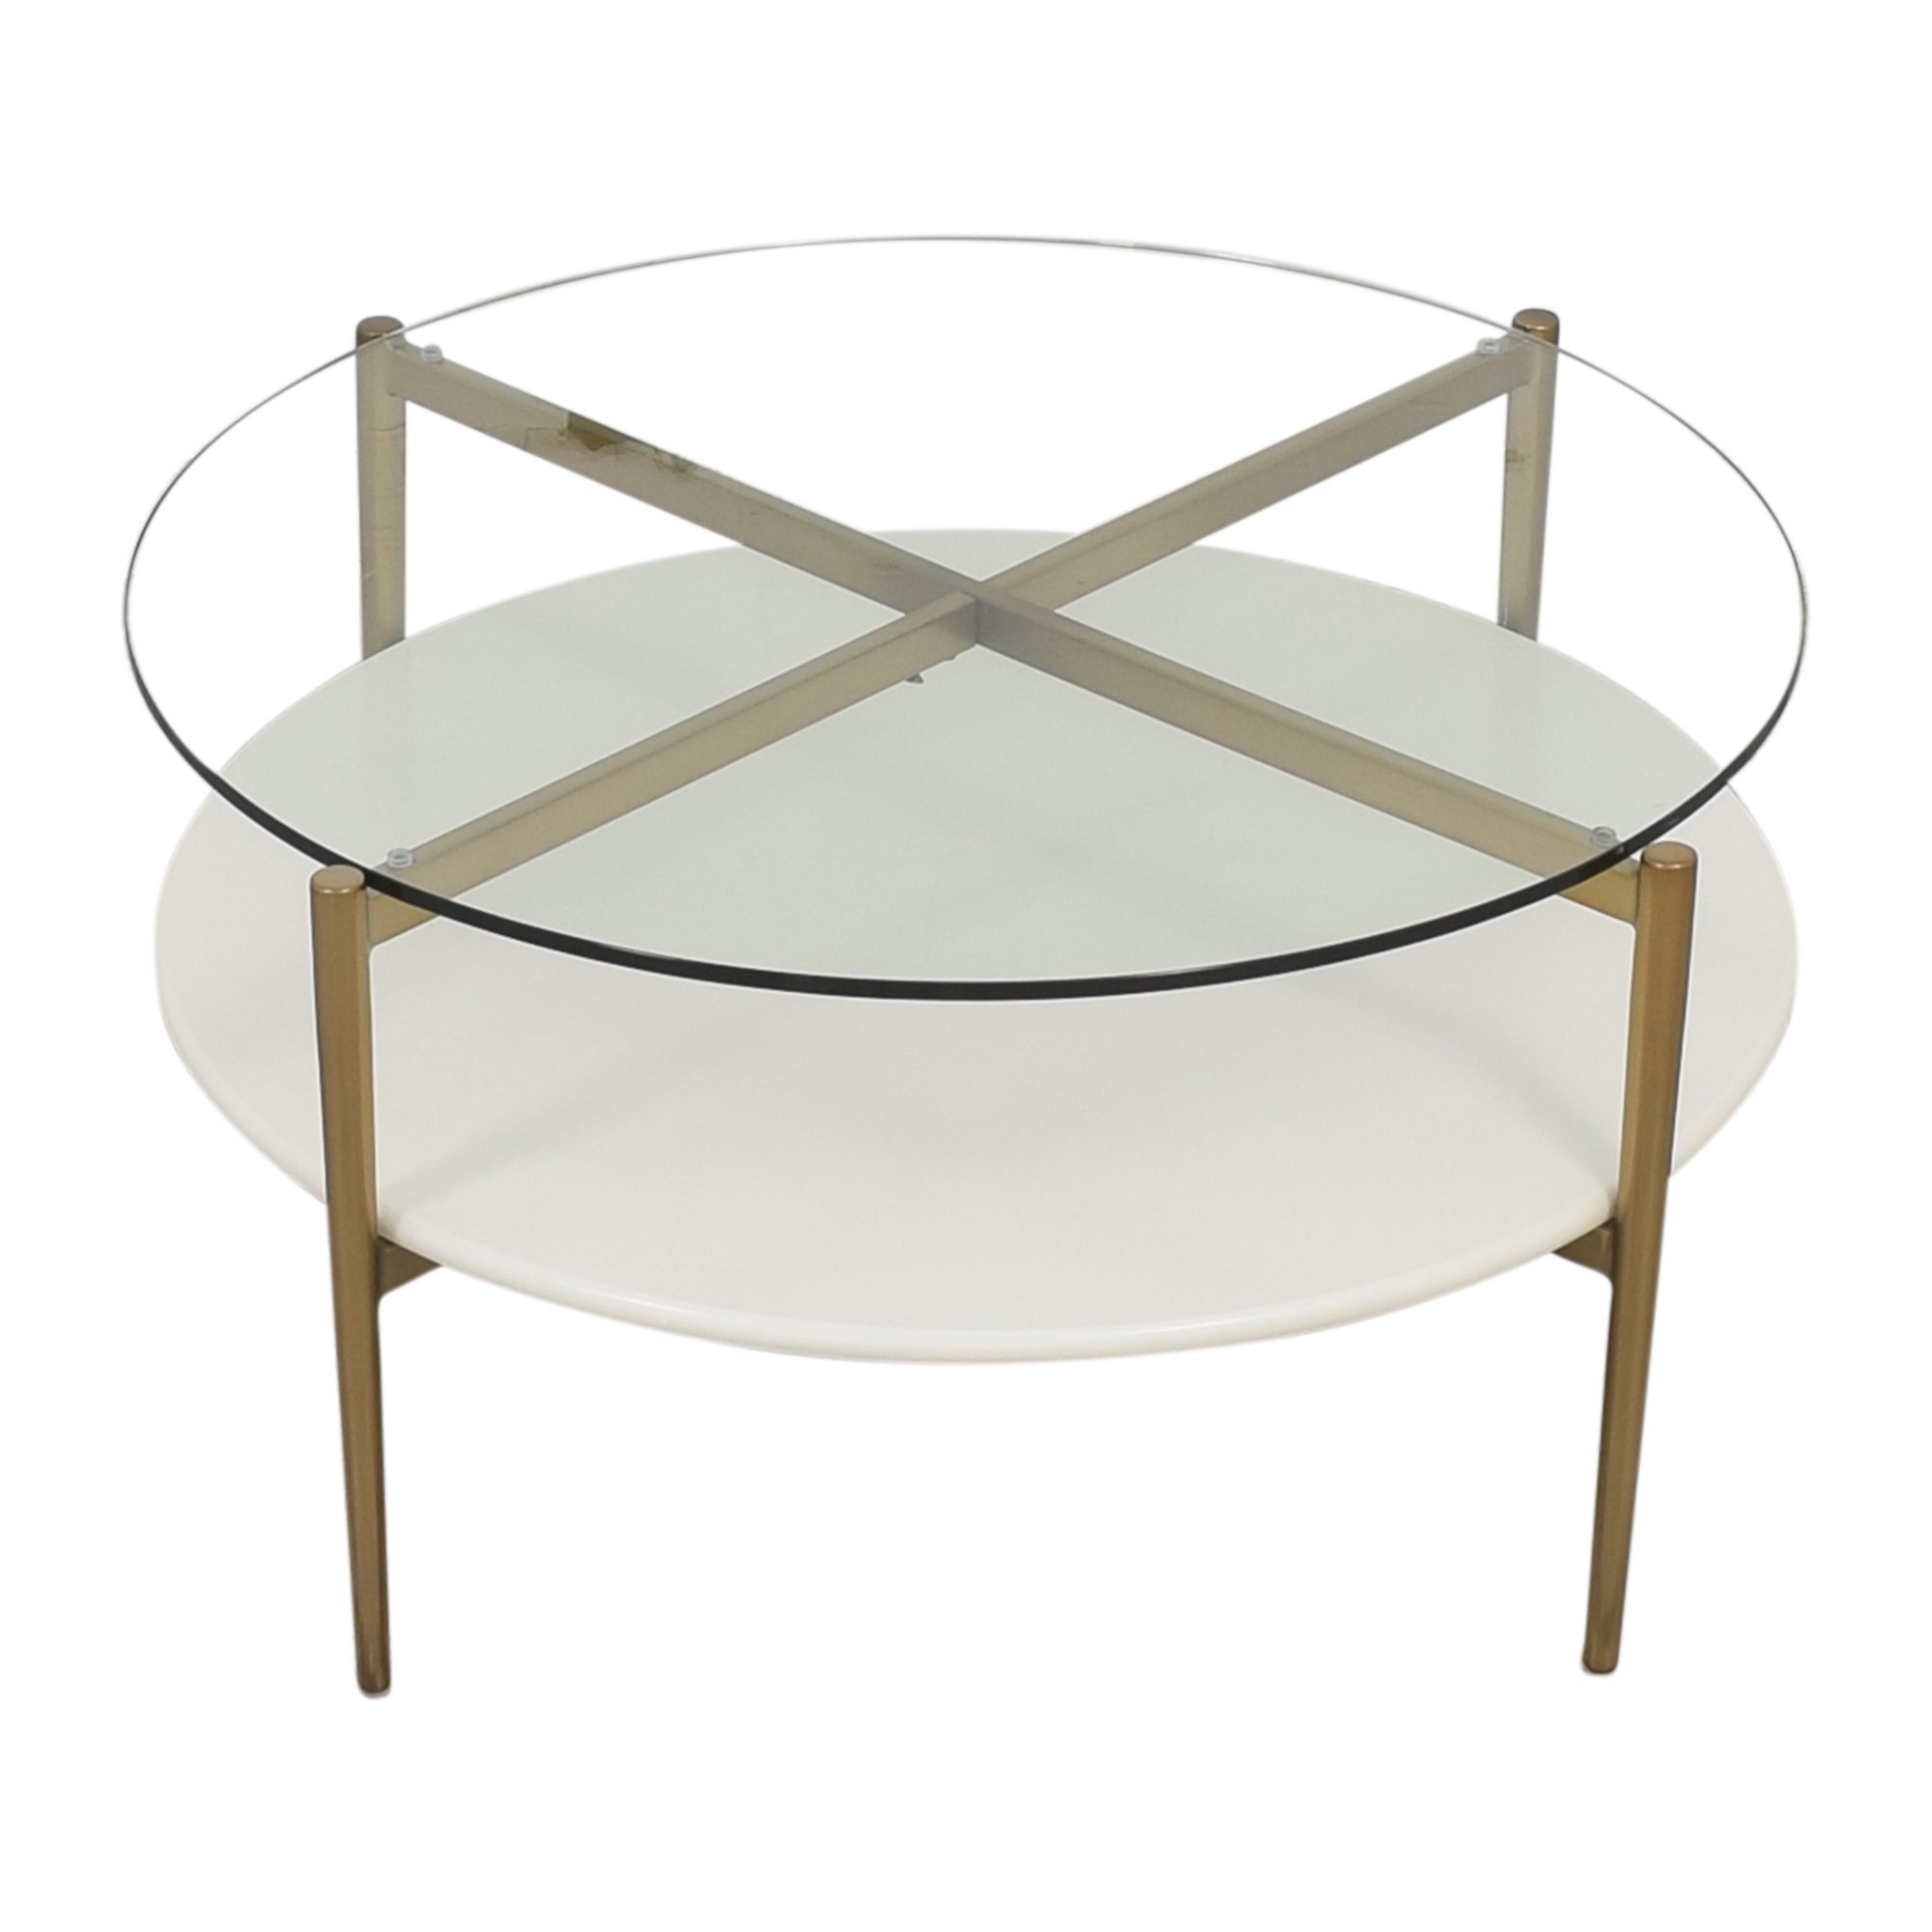 West Elm West Elm Coffee Table with Shelf and Transparent Surface